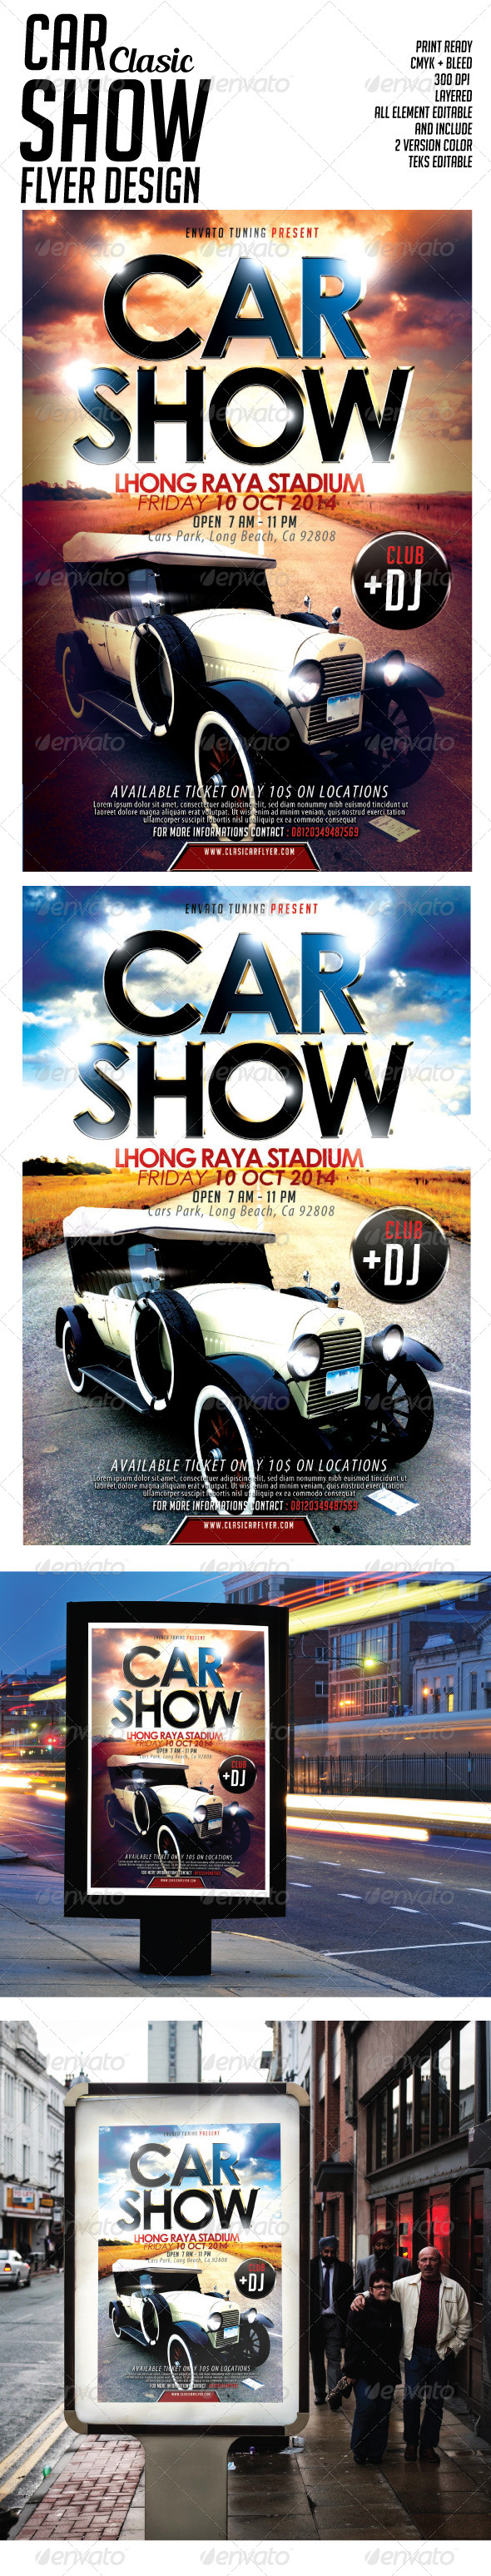 Car Show Clasic Flyer - Events Flyers